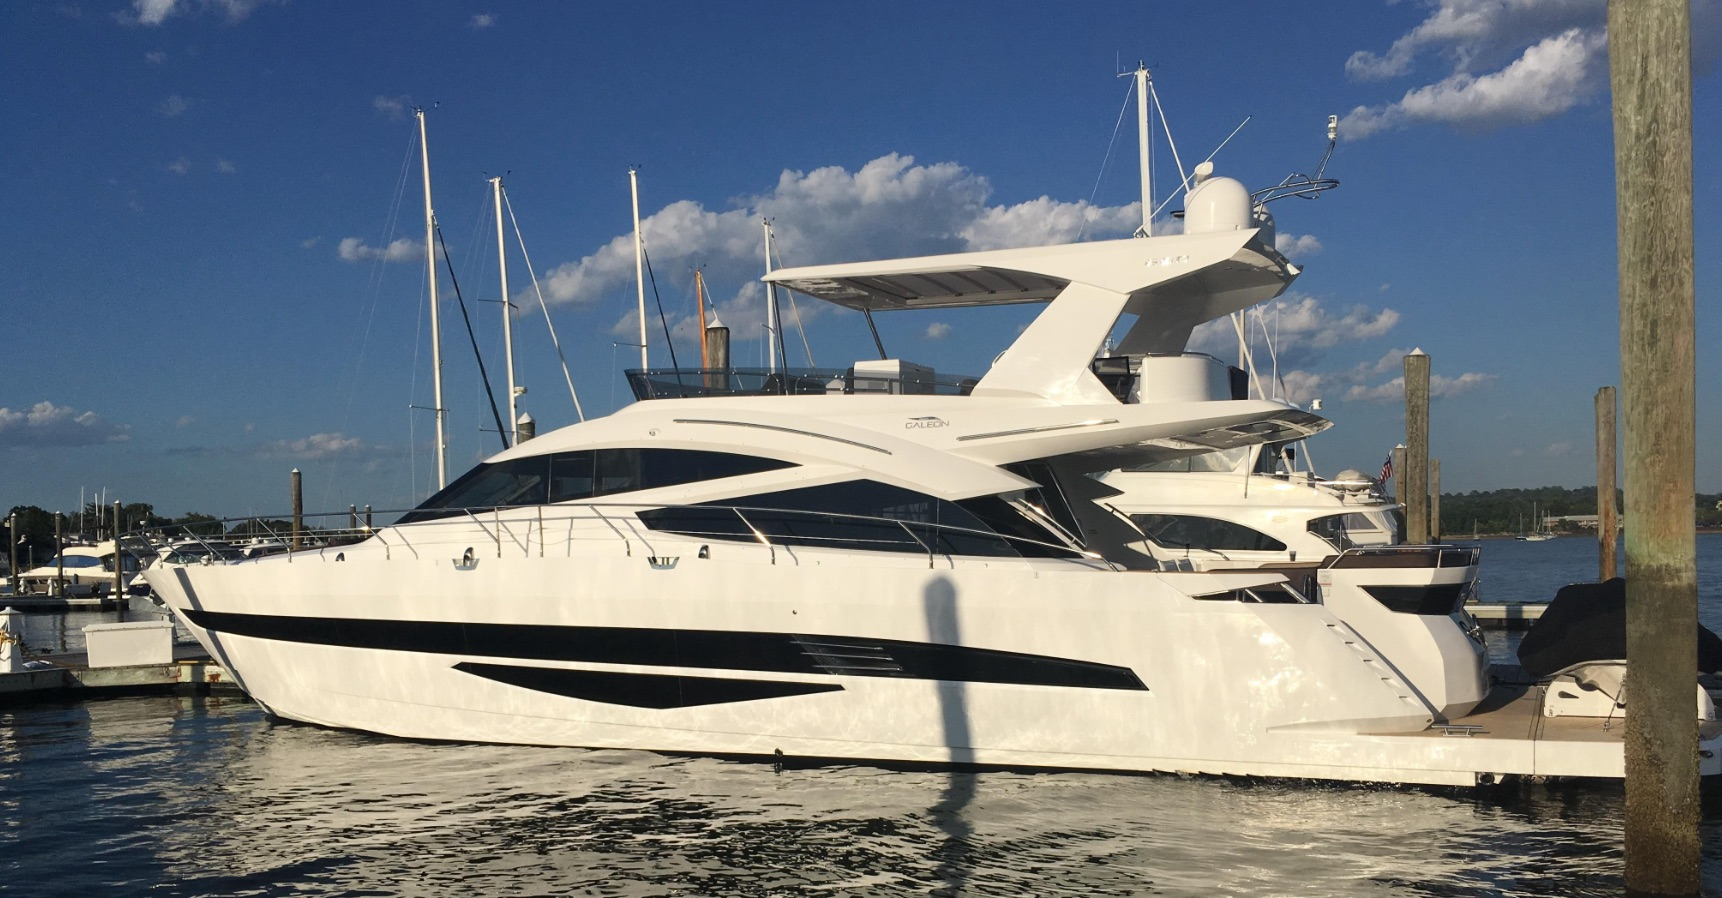 Regal Deck Design Galeon 66 Flybridge - 2016 - Ita Yachts Canada - Ita